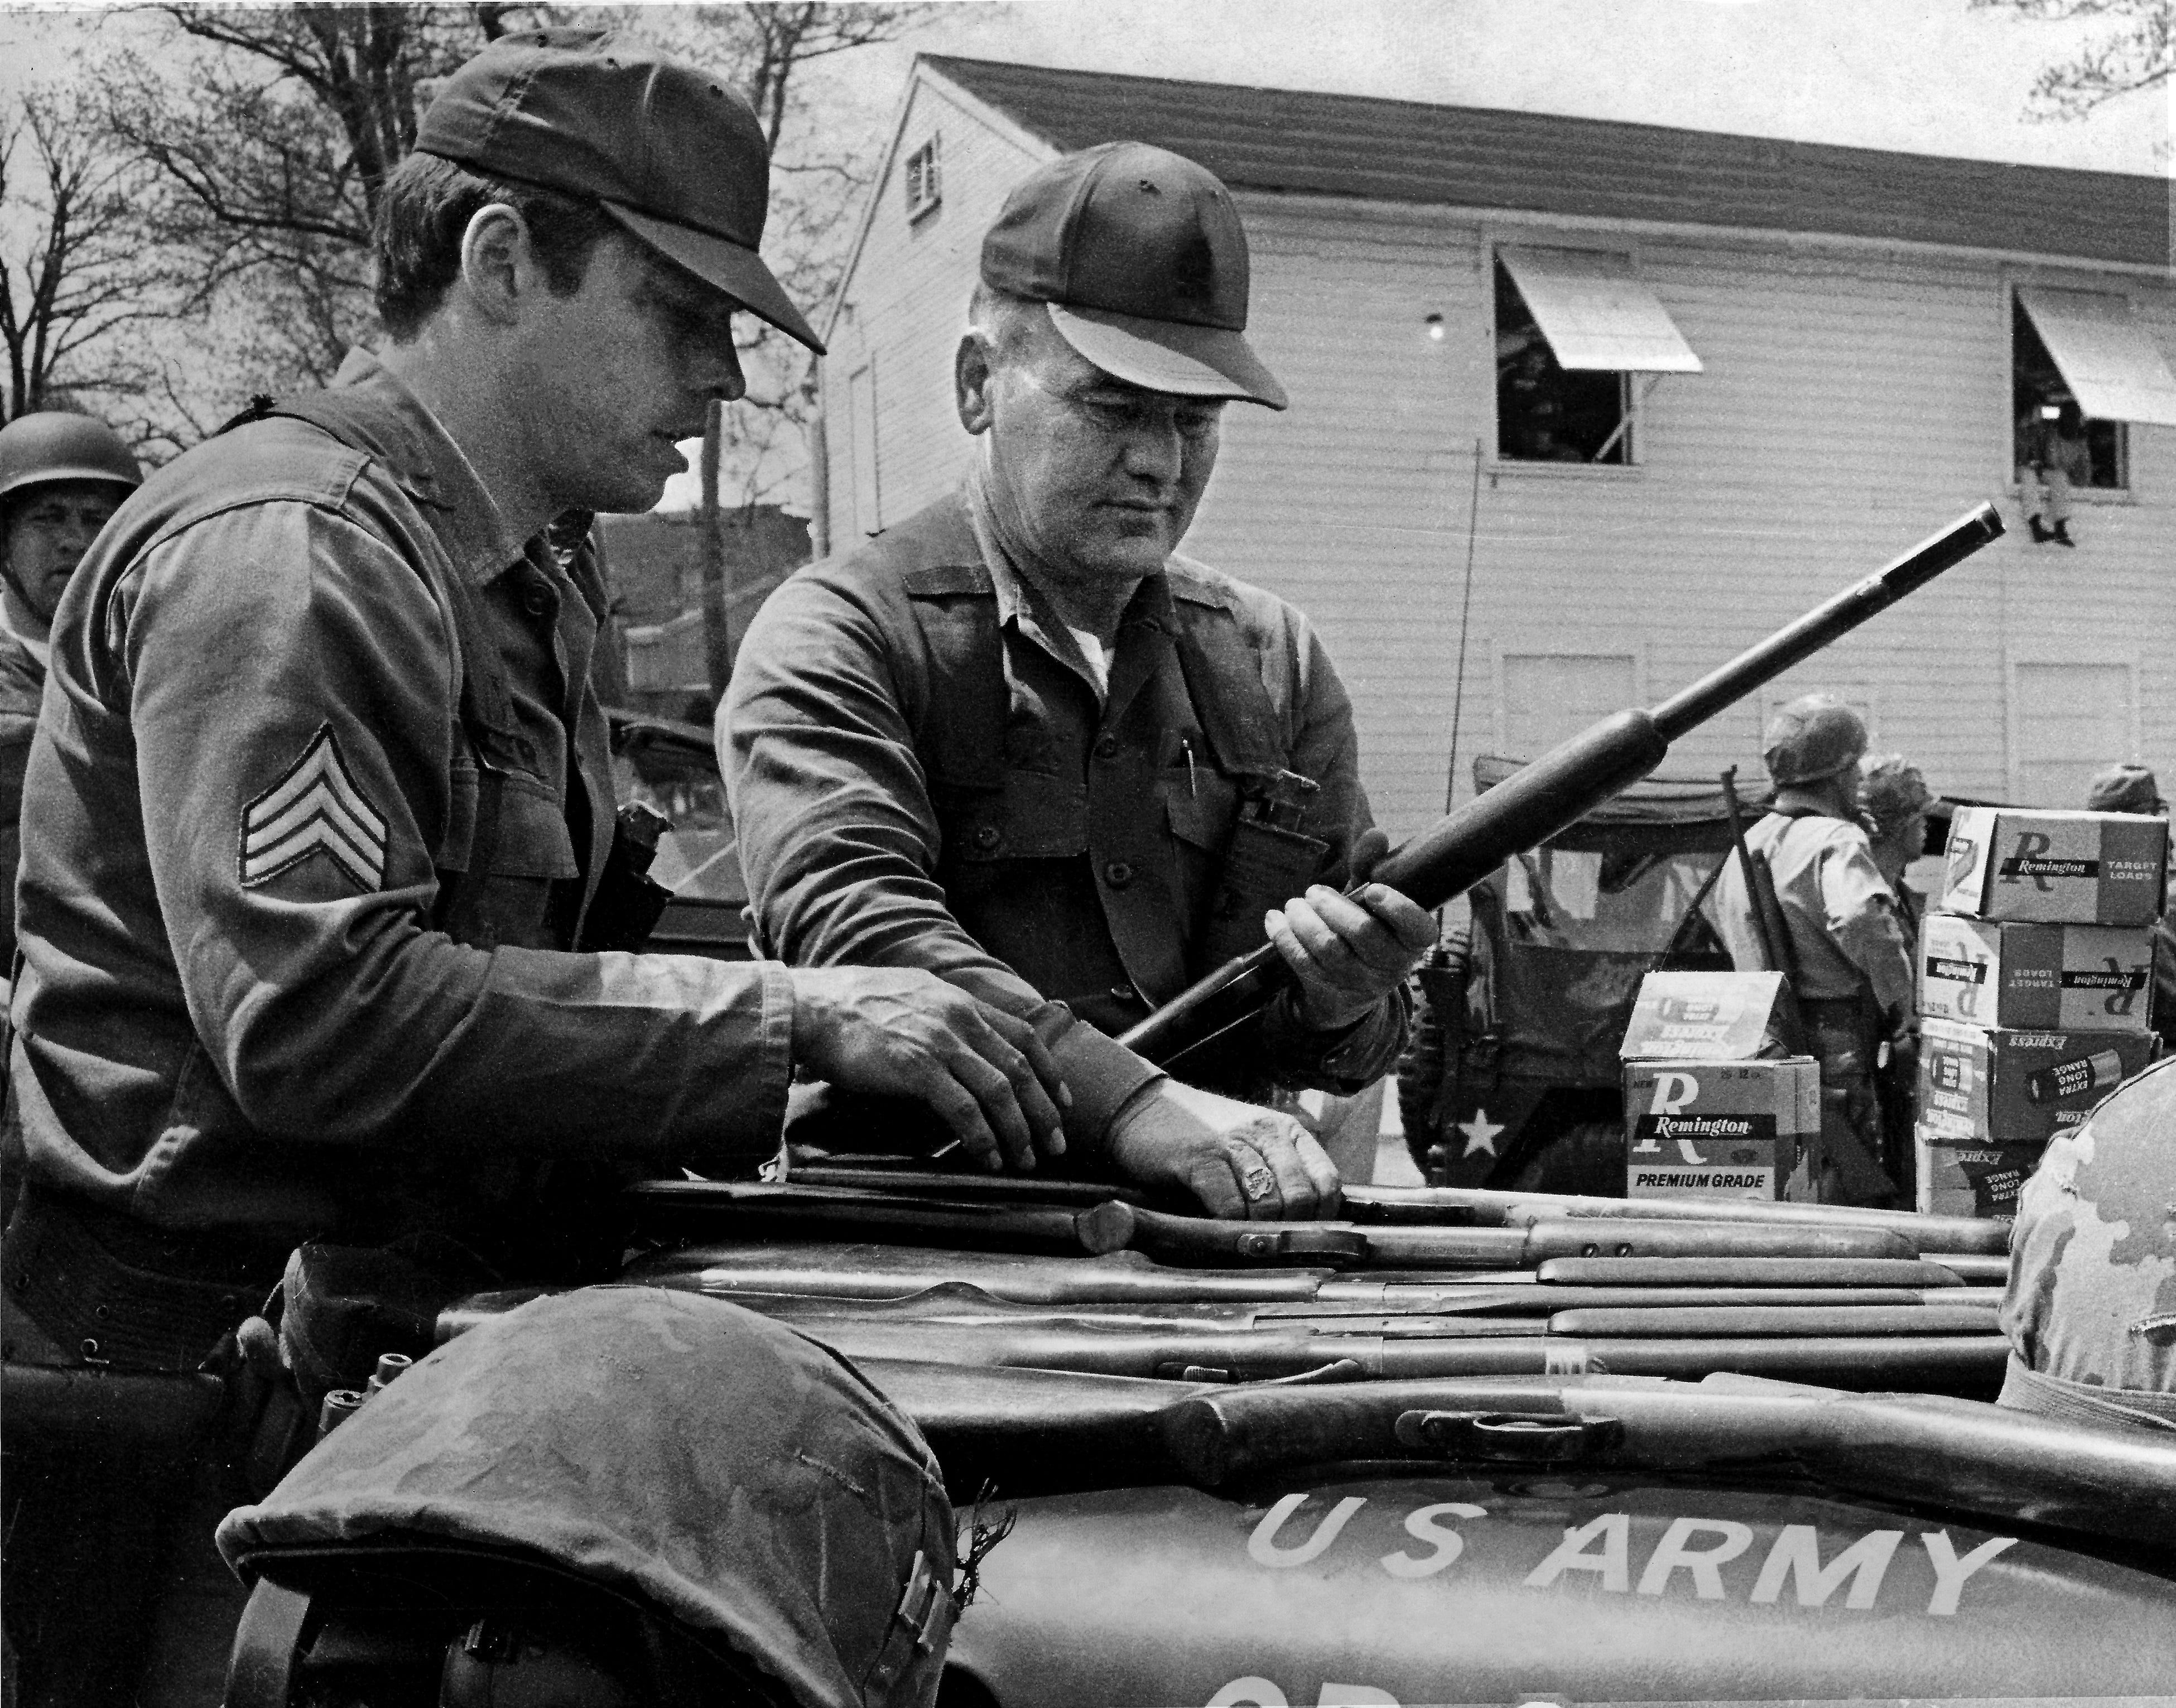 Boxes of shotgun ammunition are stacked on top of an Army jeep as Ohio National Guardsmen load shotguns at Kent State University on May 4, 1970, as they prepare to again confront student protesters on campus. At the same time, faculty marshals were pleading with the crowd to disperse following the deaths of four students earlier that afternoon.